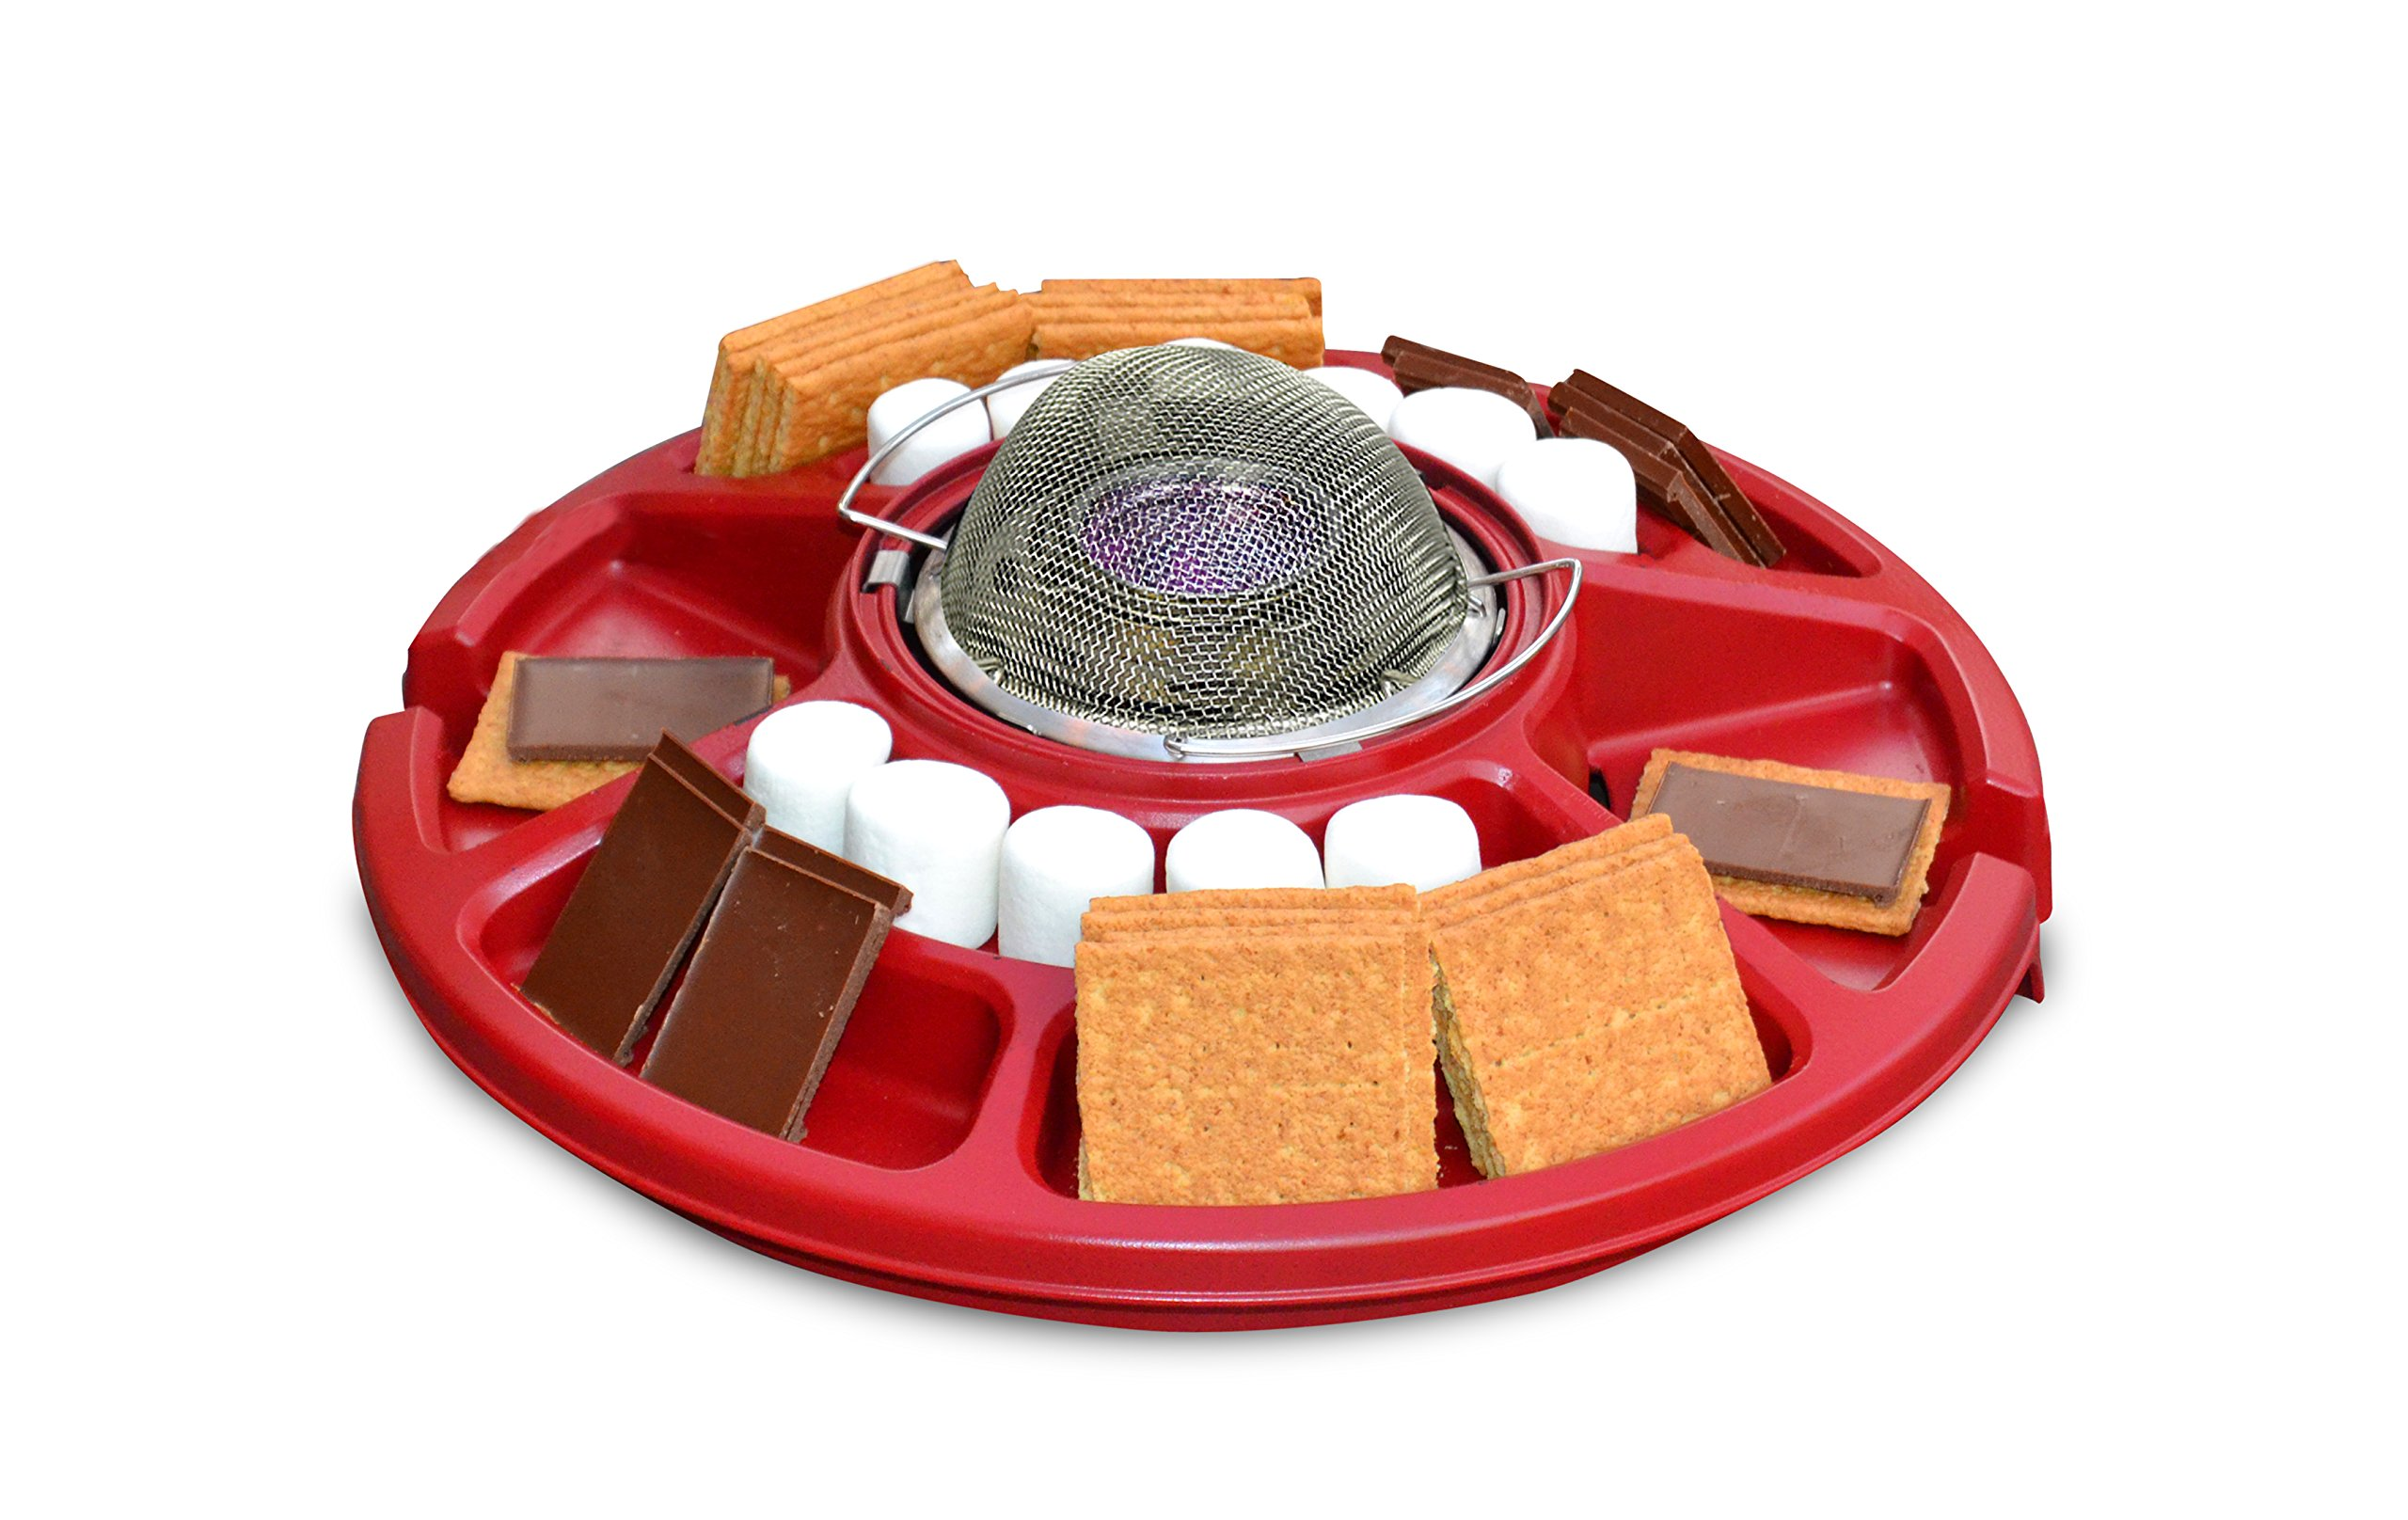 Sterno 70228 Family Fun S'mores Maker, Red by Sterno